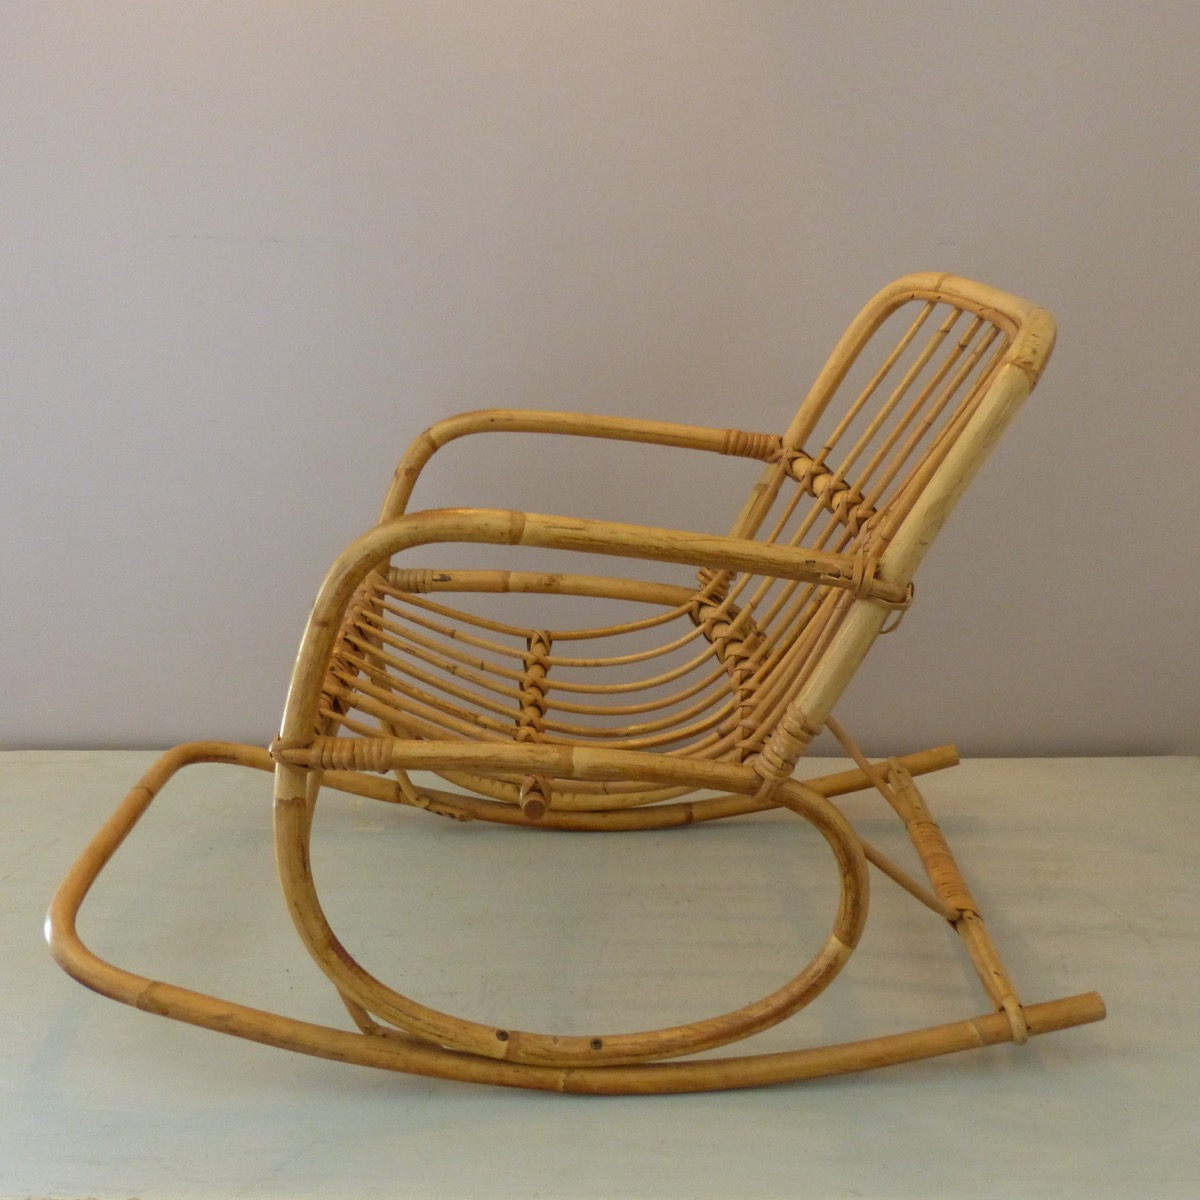 rocking chair pour enfant en rotin lignedebrocante brocante en ligne chine pour vous meubles. Black Bedroom Furniture Sets. Home Design Ideas